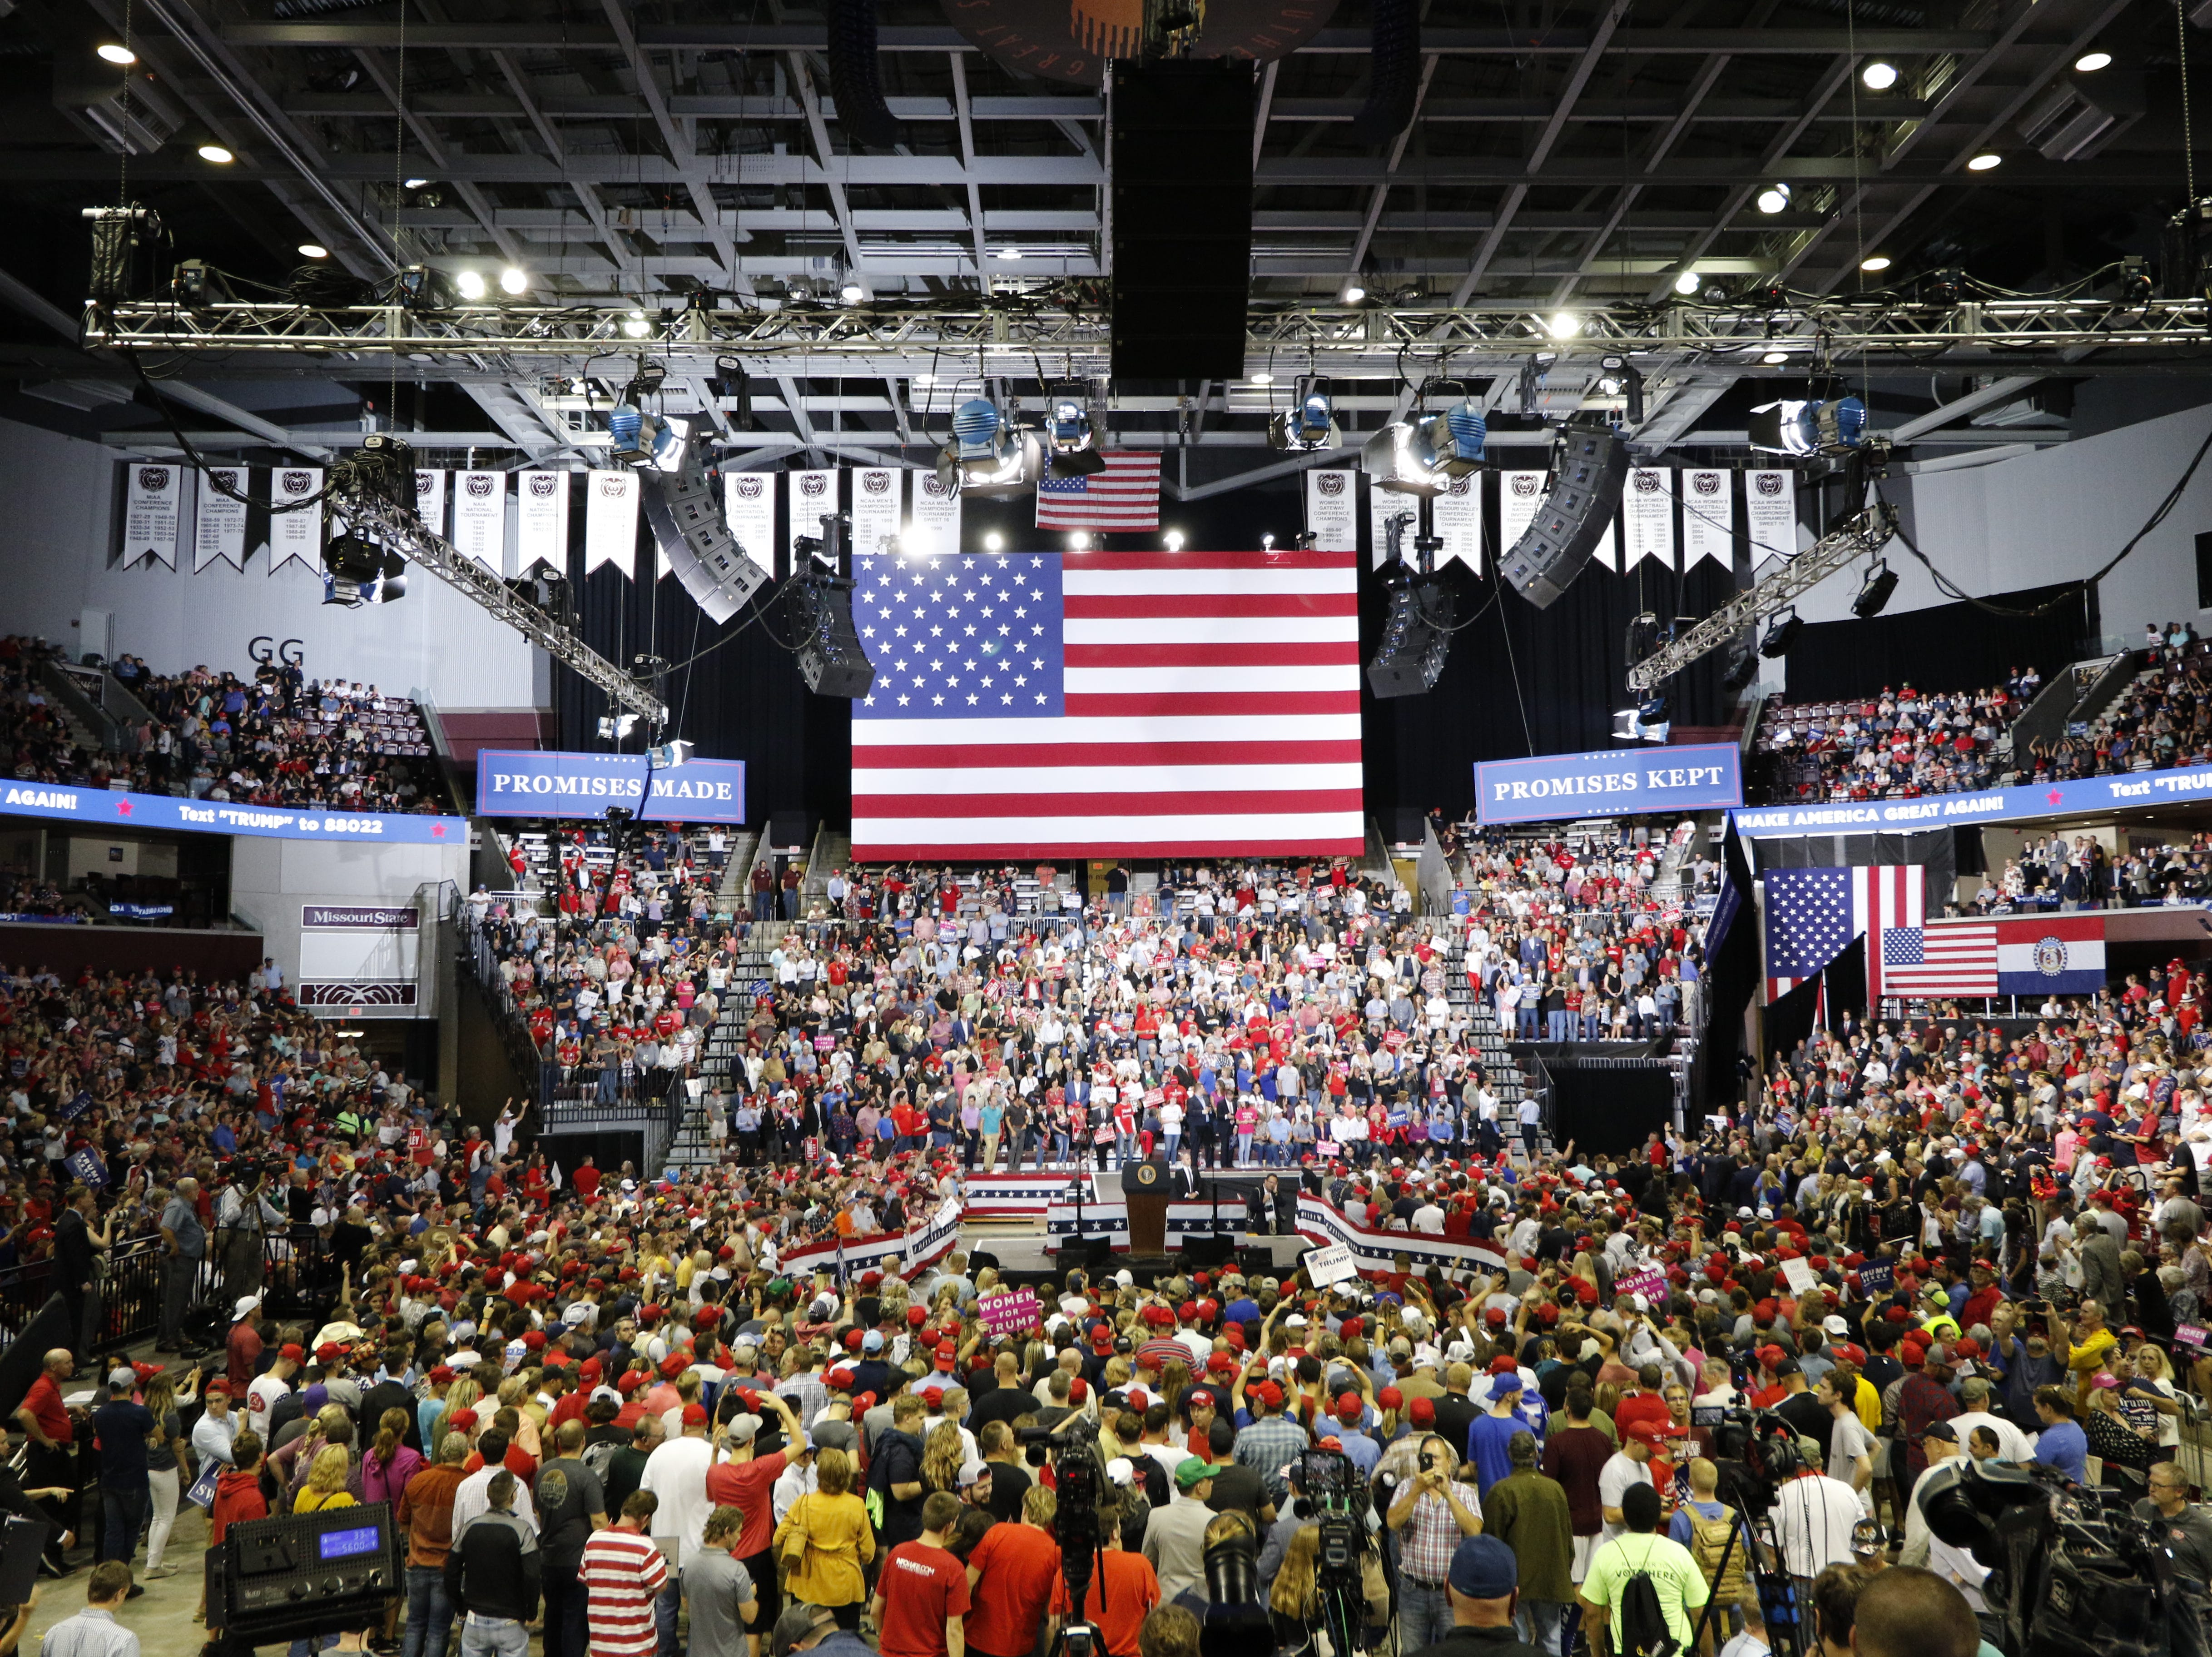 The crowd waits as President Trump prepares to speak Friday, Sept. 21, 2018 at JQH Arena in Springfield.